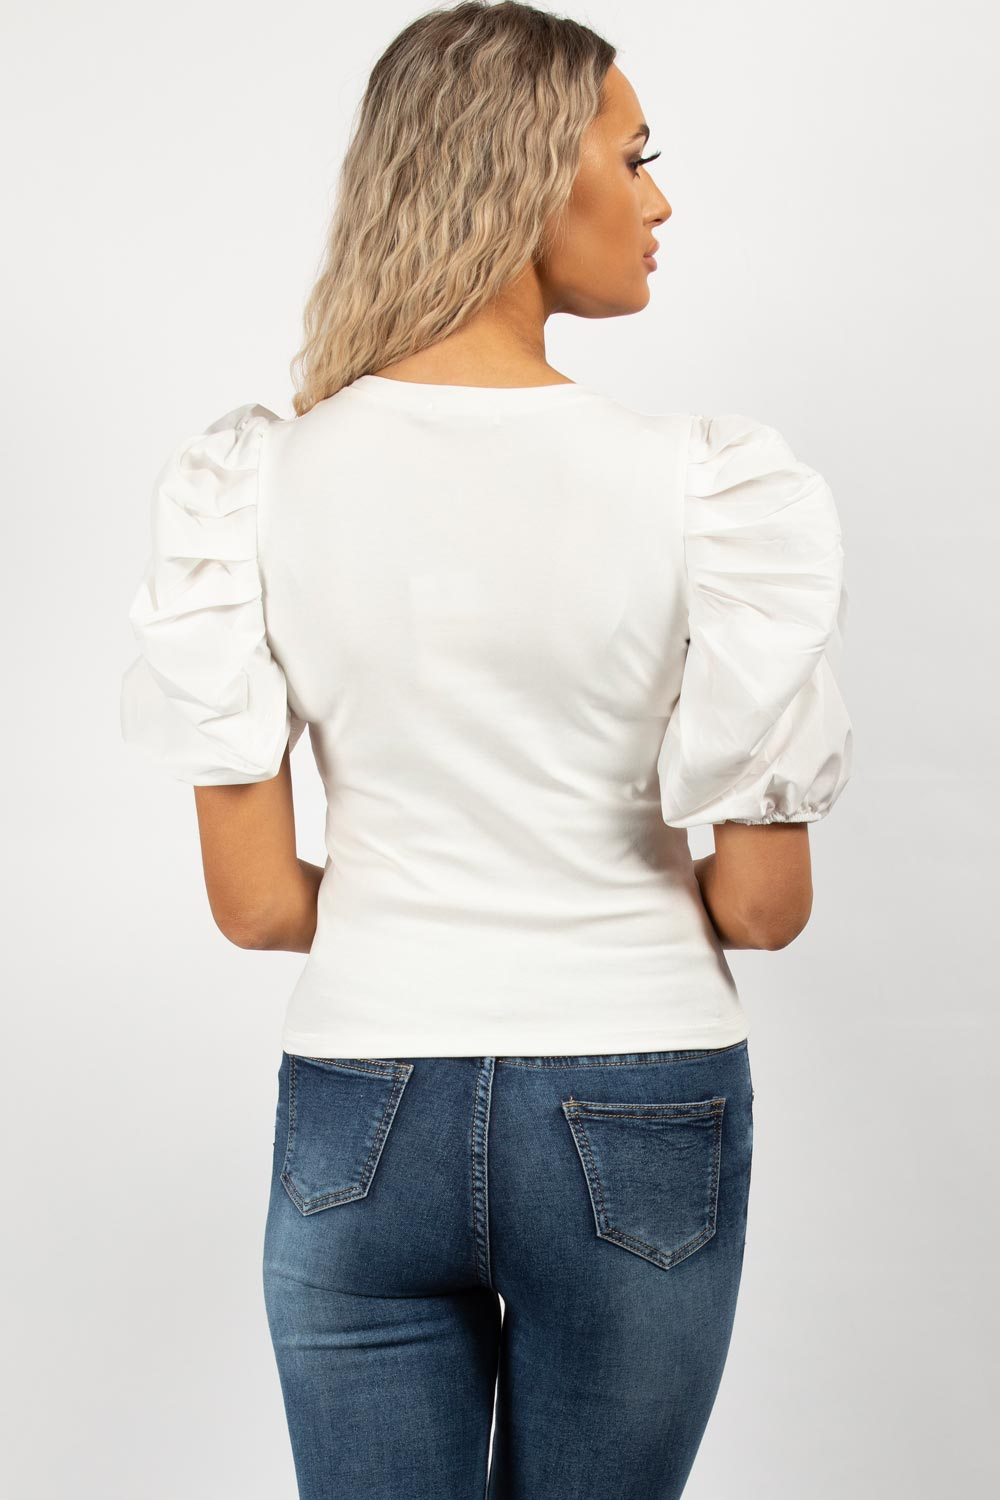 womens white t shirt